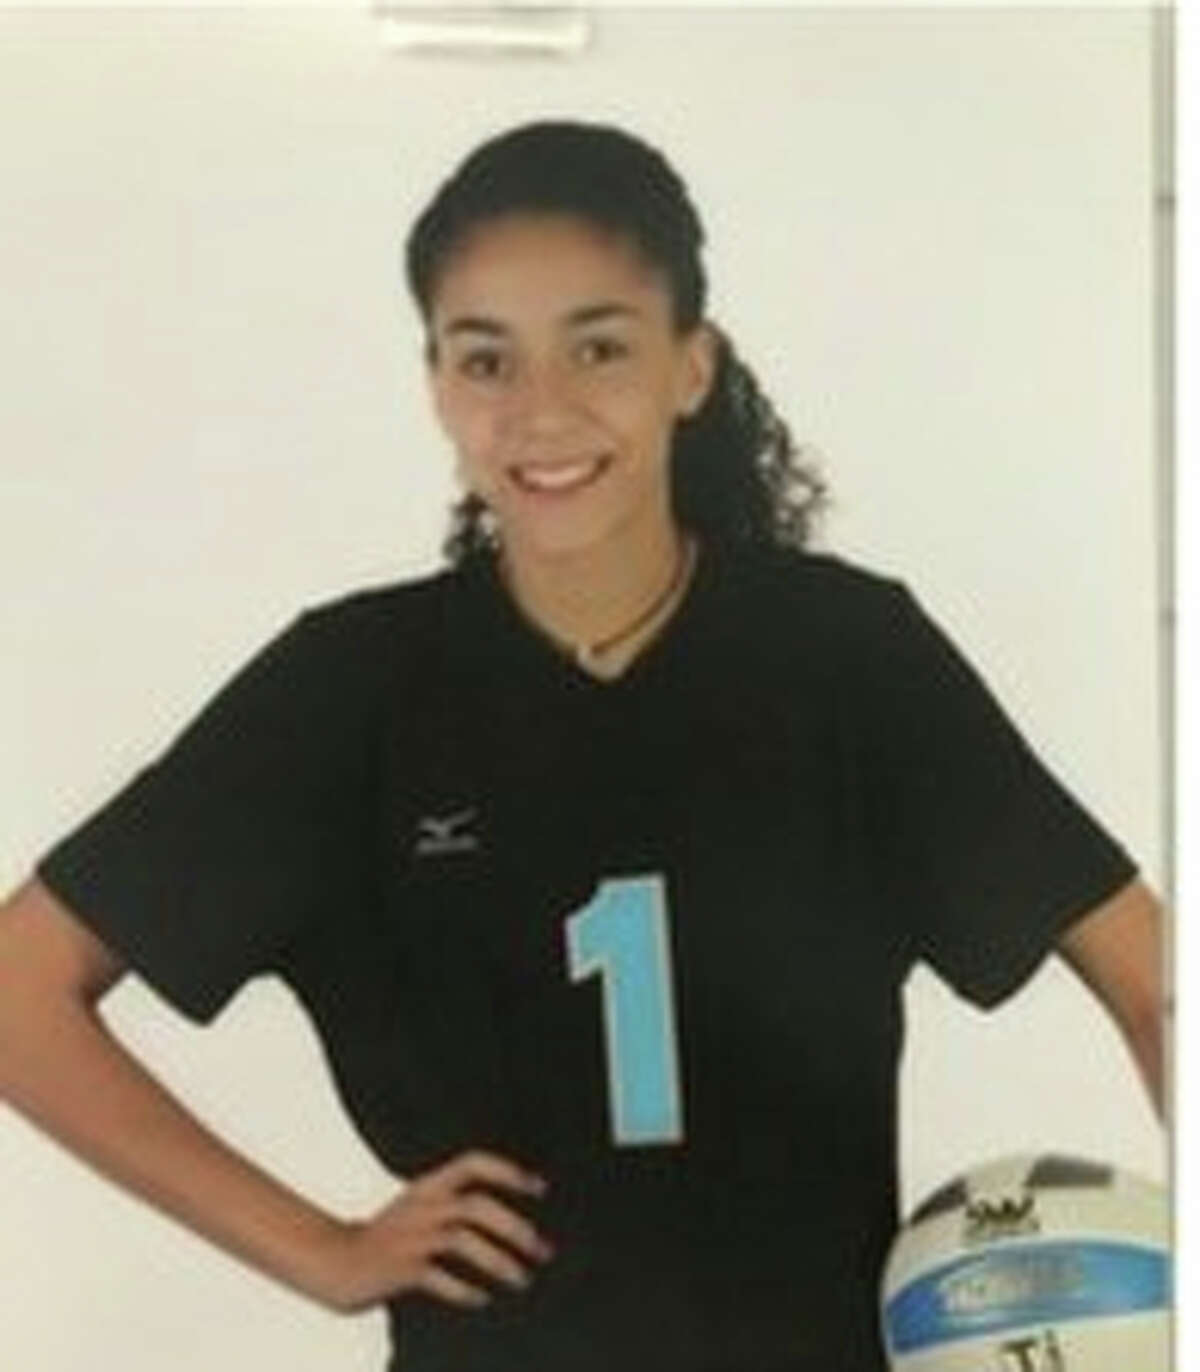 Kali NelsonO'Connor volleyball: 21 kills, 3 blocks in 5-set comeback win over Brandeis Vote for the Athlete of the Week here.